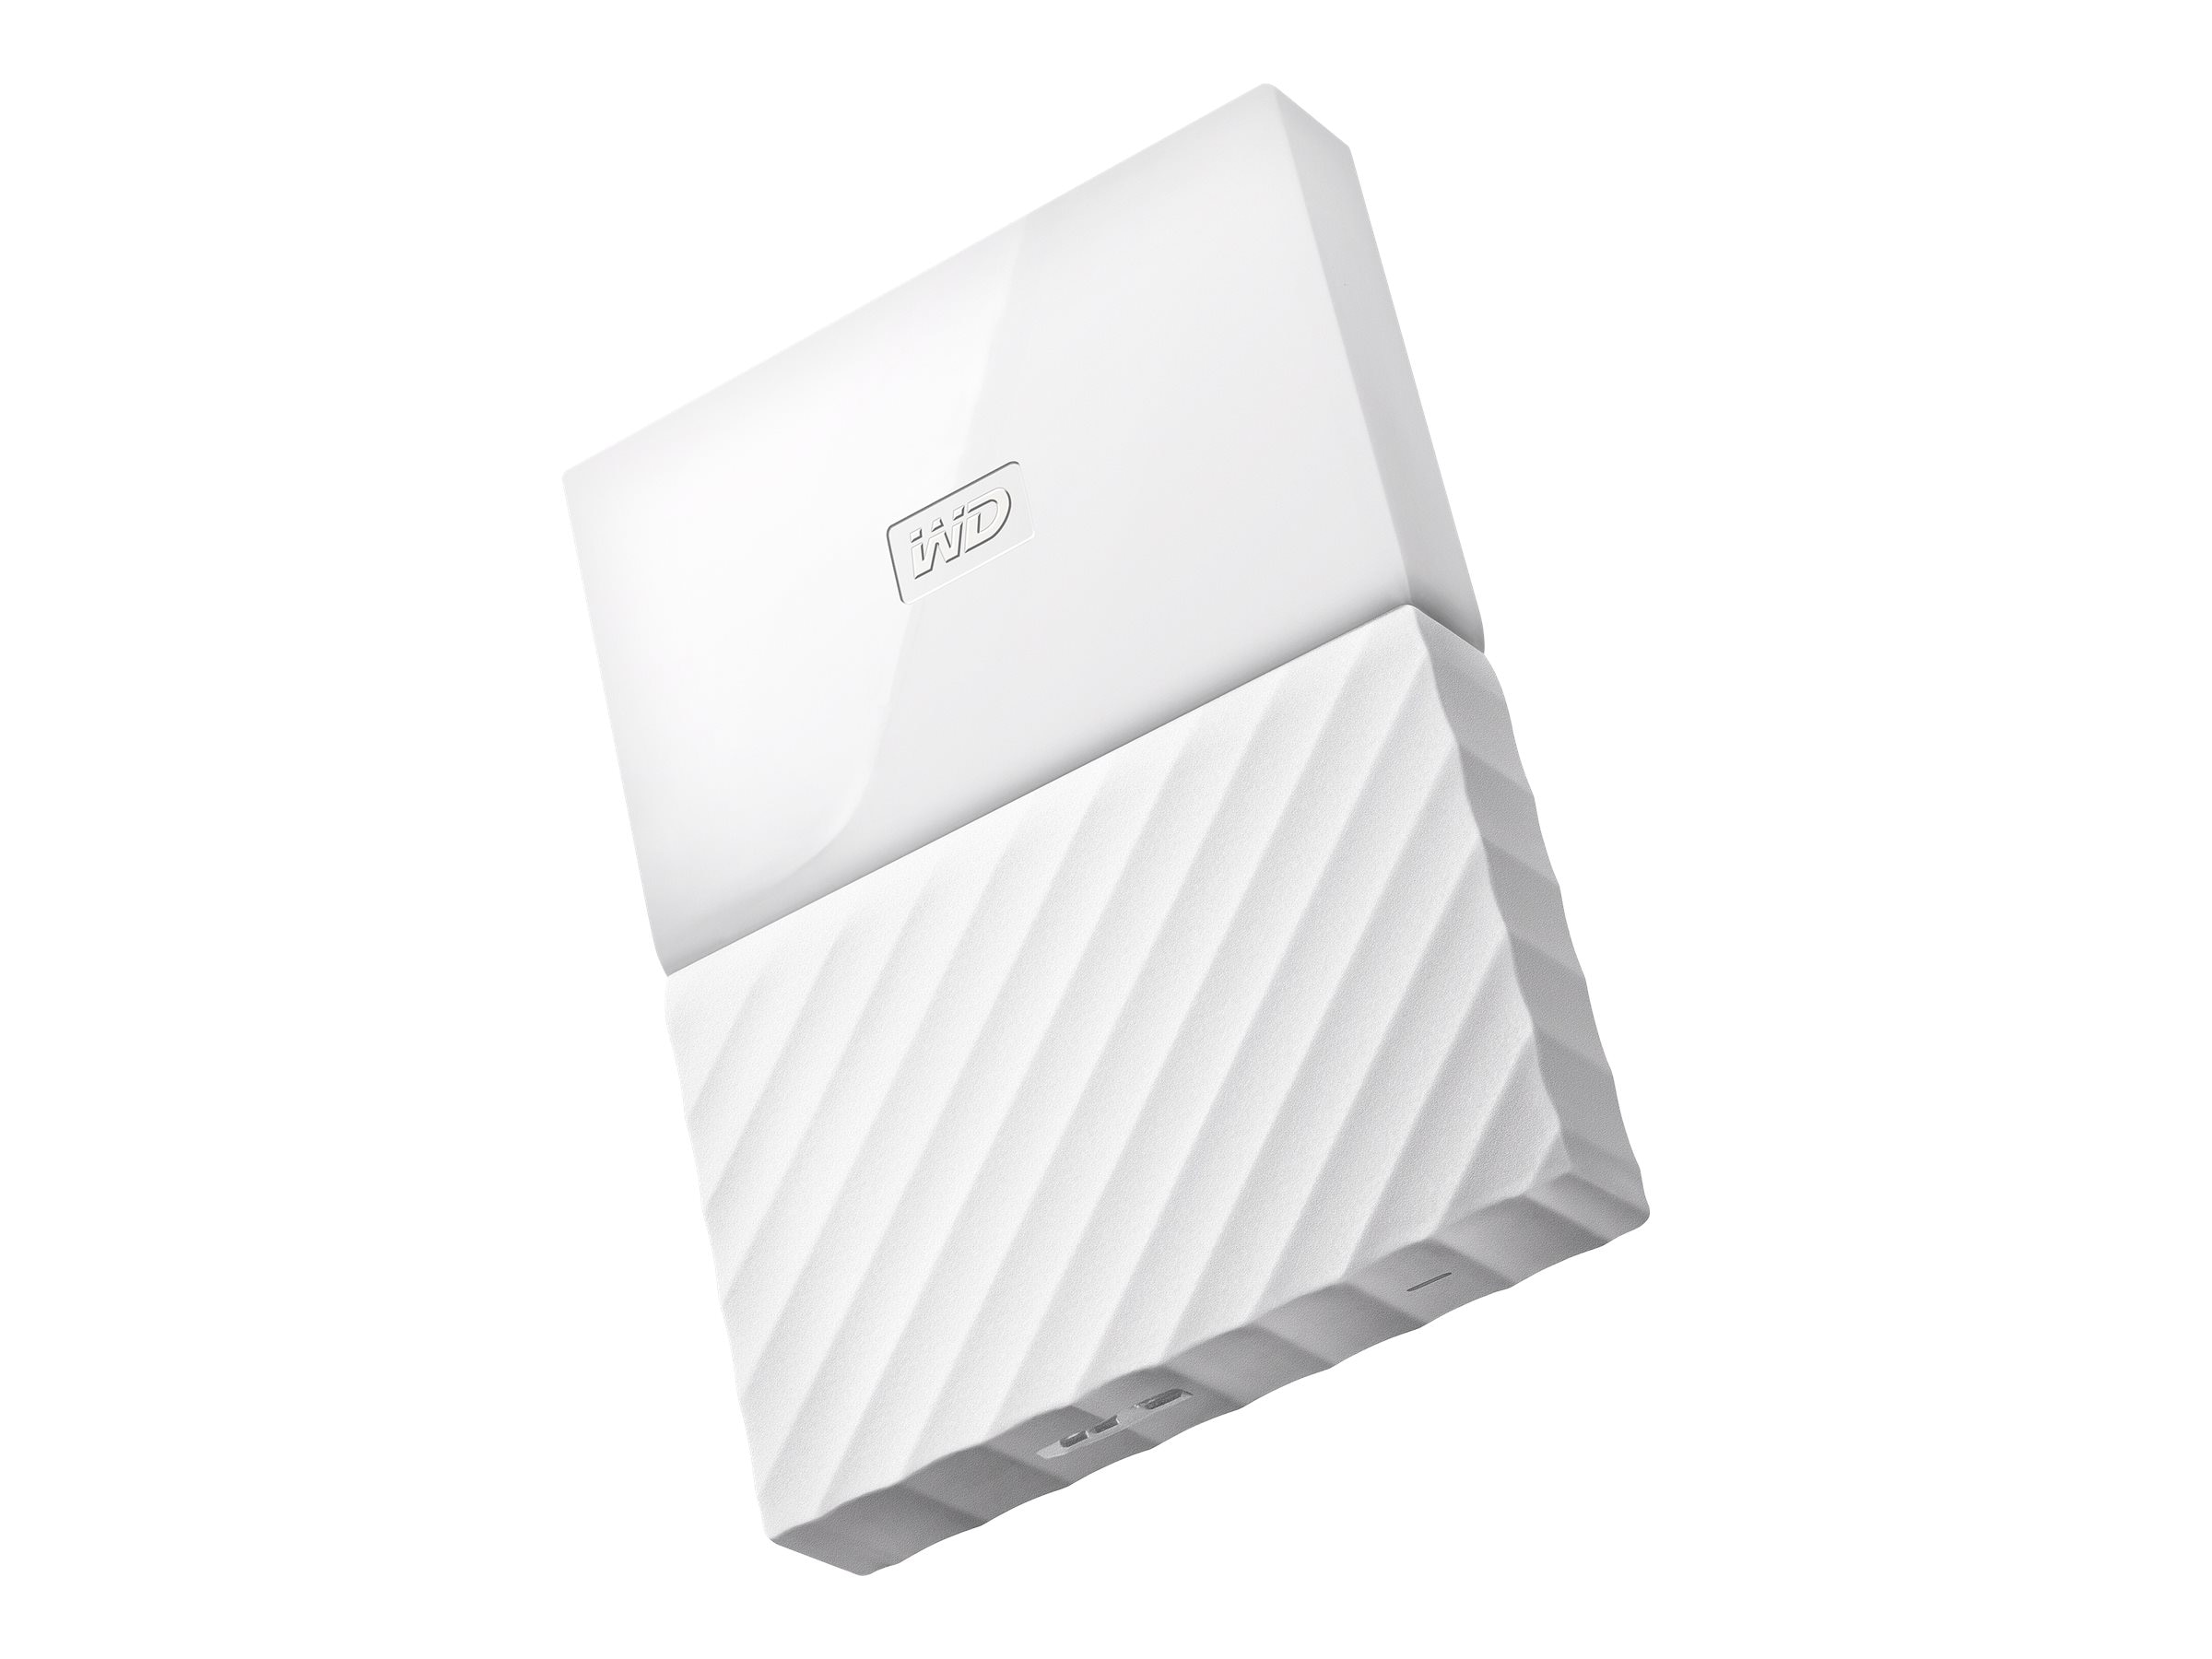 WD 4TB My Passport USB 3.0 Portable Hard Drive - White